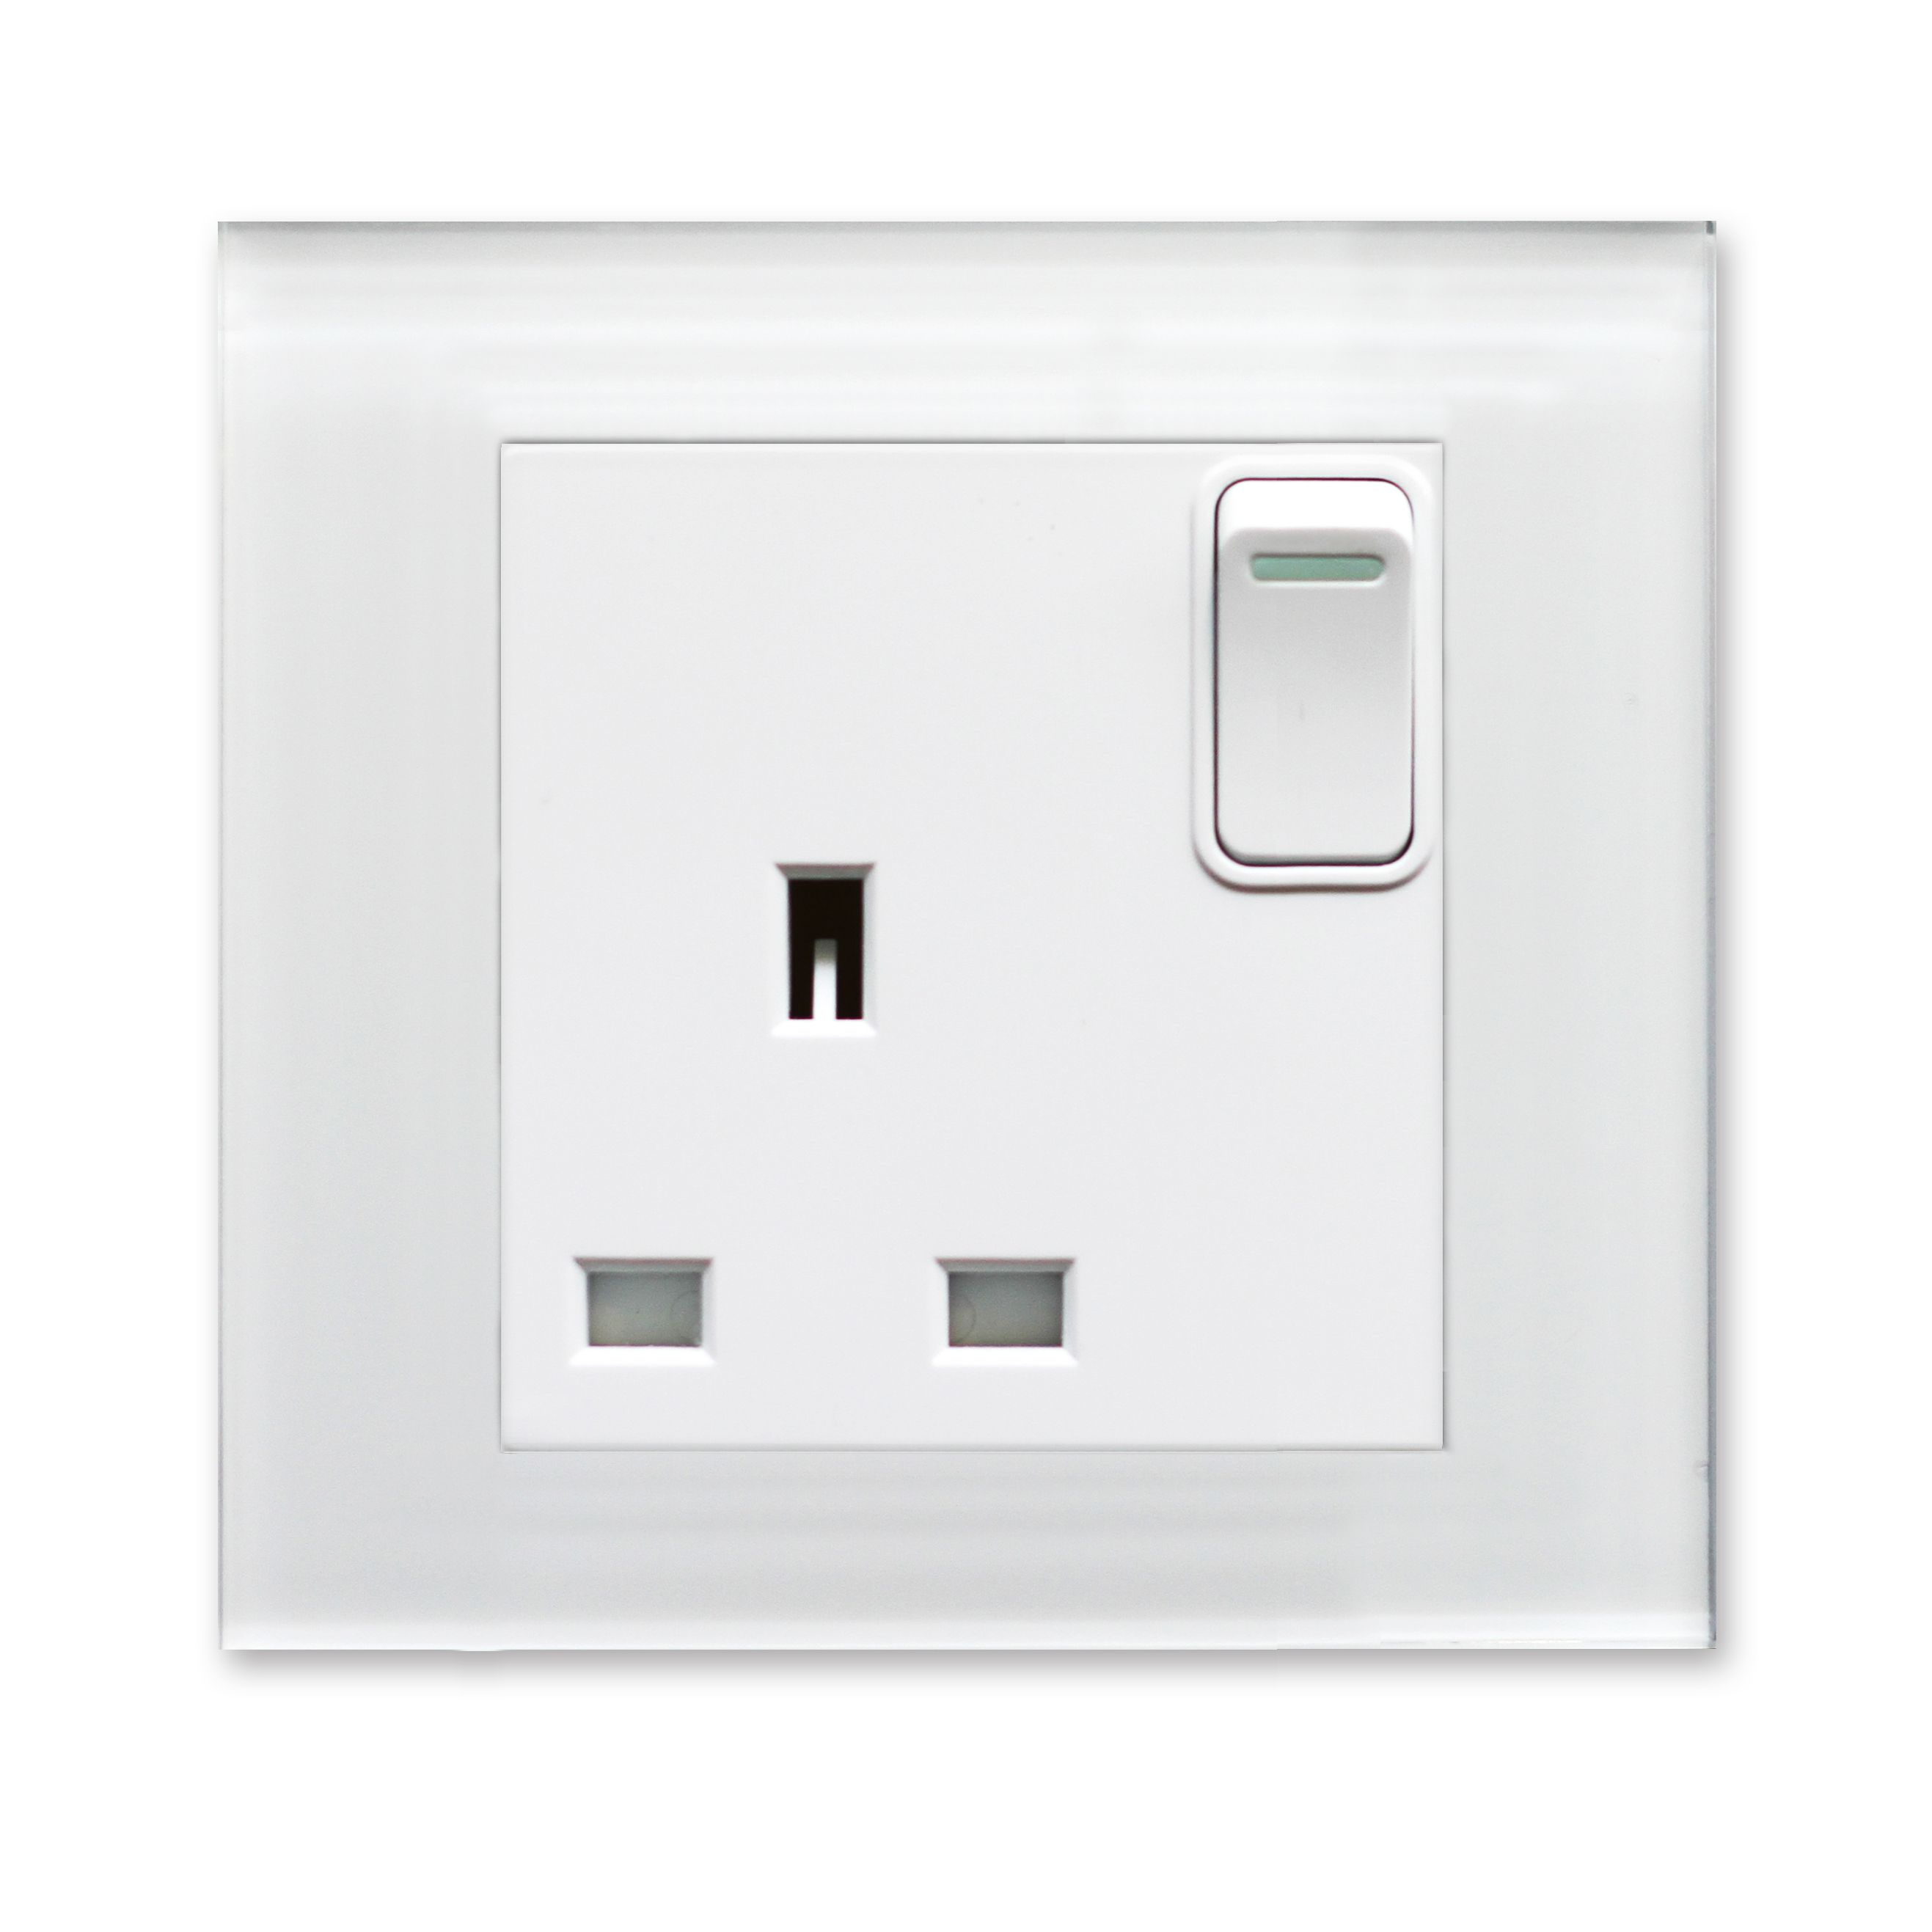 Crystal PG Single switched socket White PG Glass Plug sockets by